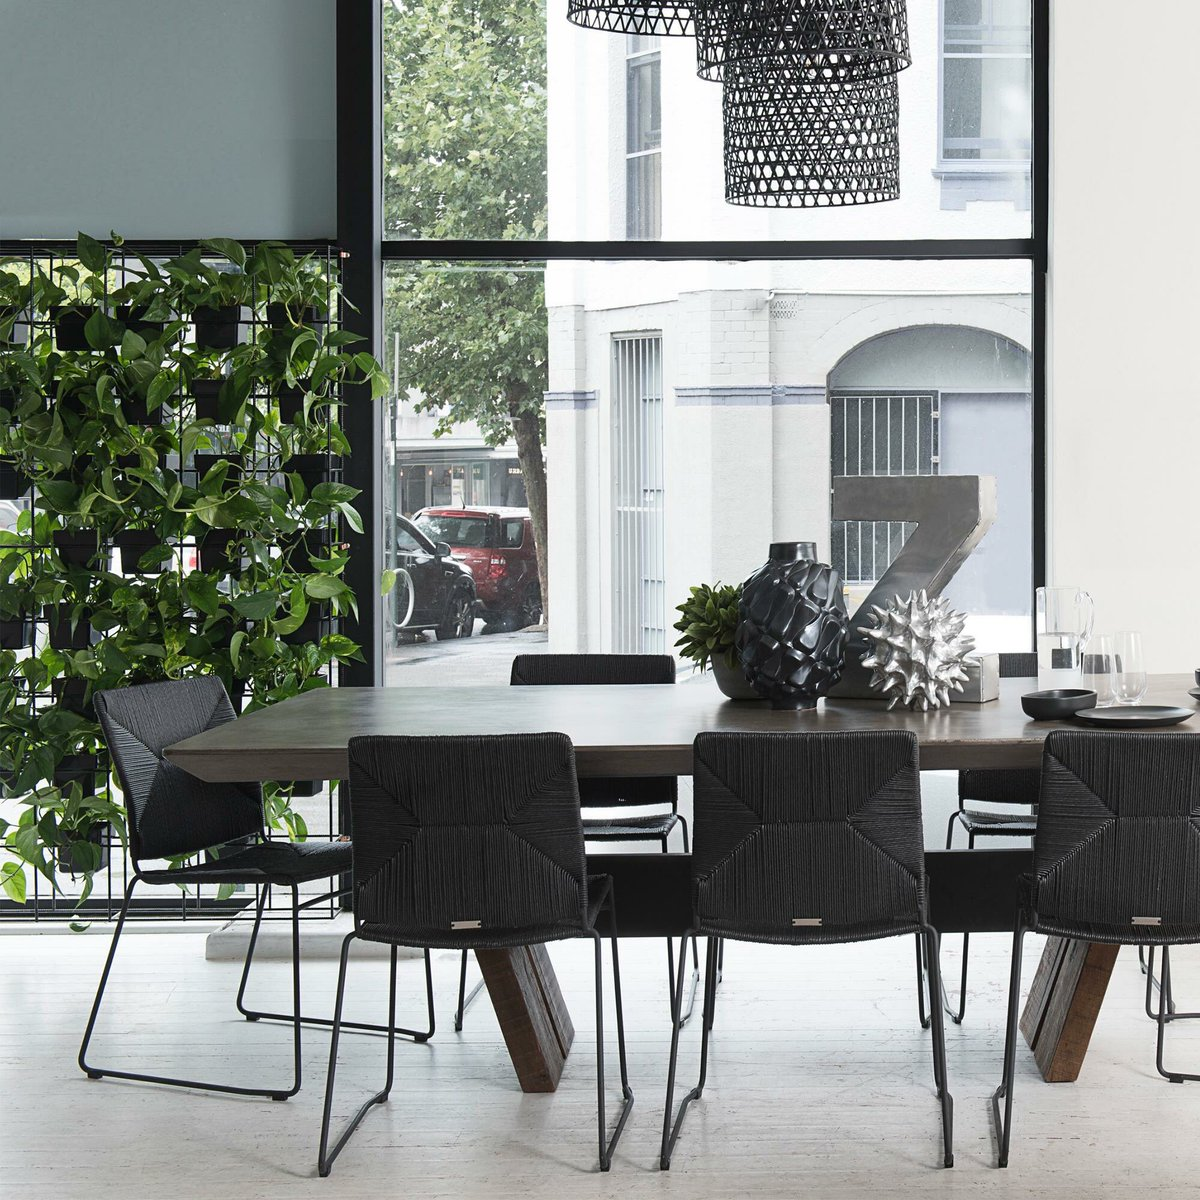 Coco Republic On Twitter Dining With Contemporary Edge With The Westside Dining Table And Julian Dining Chair At 88onregent By Thirdi Group